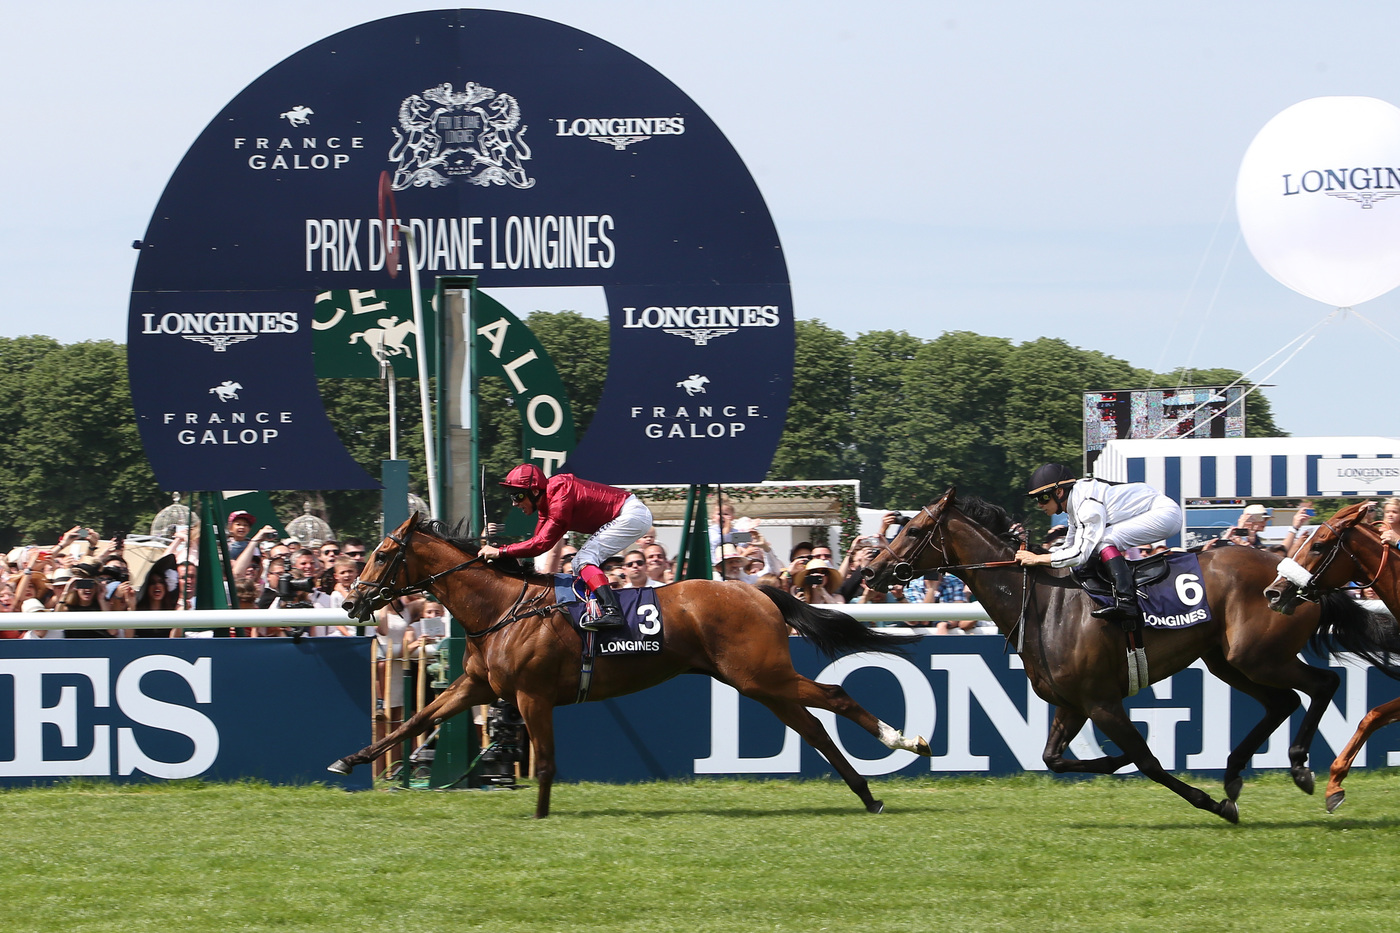 Longines Flat Racing Event: The Prix de Diane Longines – 45'000 spectators, 9 races, 1 Queen of Elegance and 1 King of the Prix de Diane Longines 5